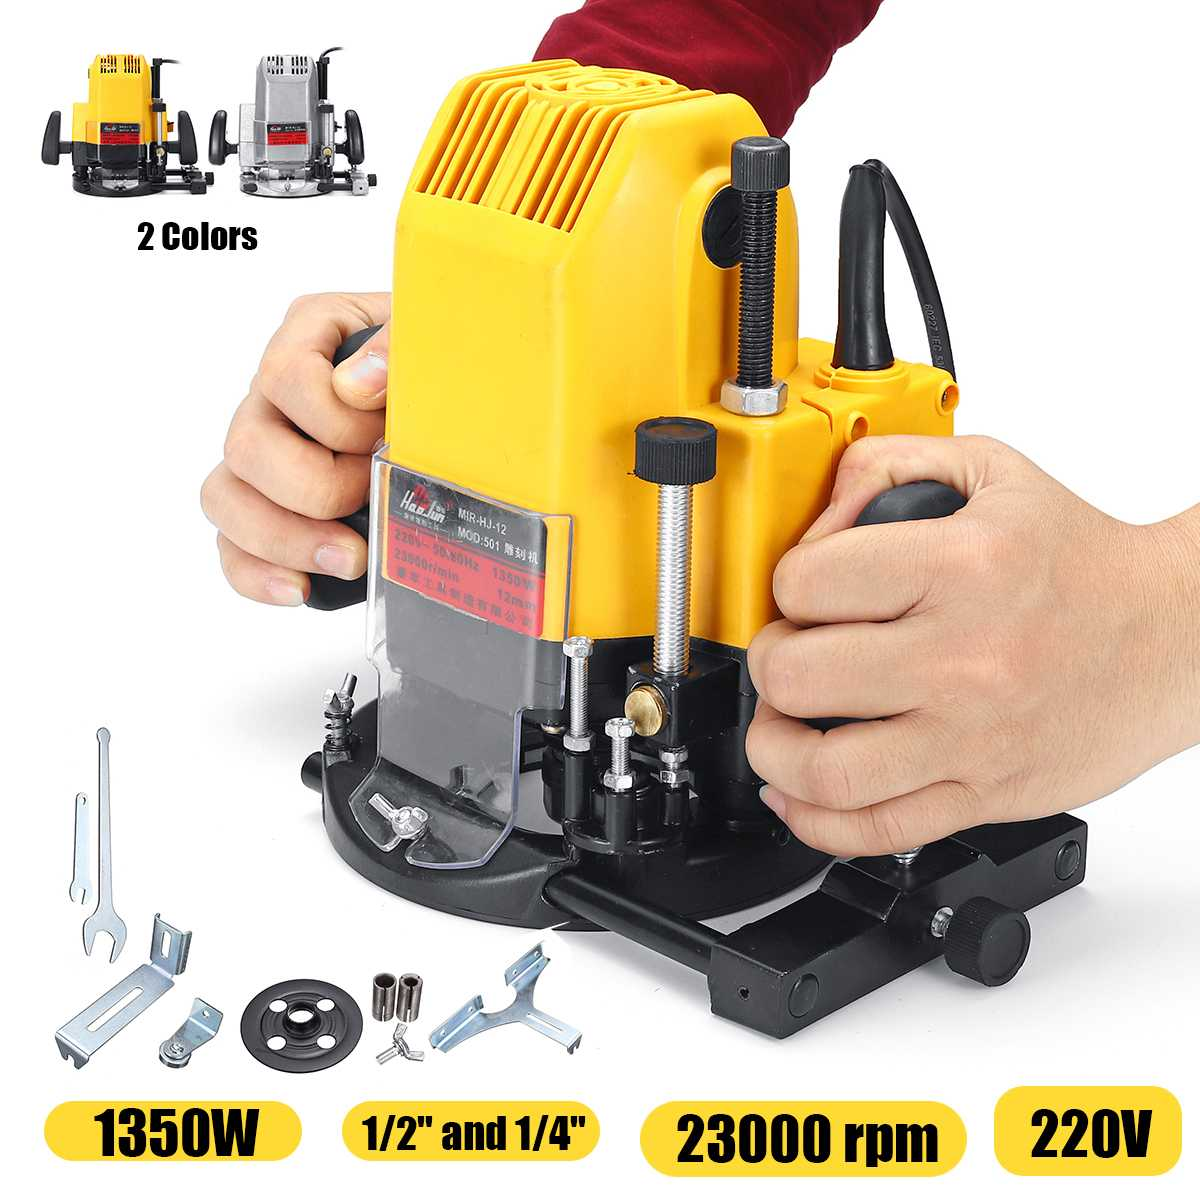 """1/4"""" 1/2"""" Wood Routing Machine 1350W 220V Electric Plunge Router Collet Electric Router Woodworking Trimmer Trimming Machine"""